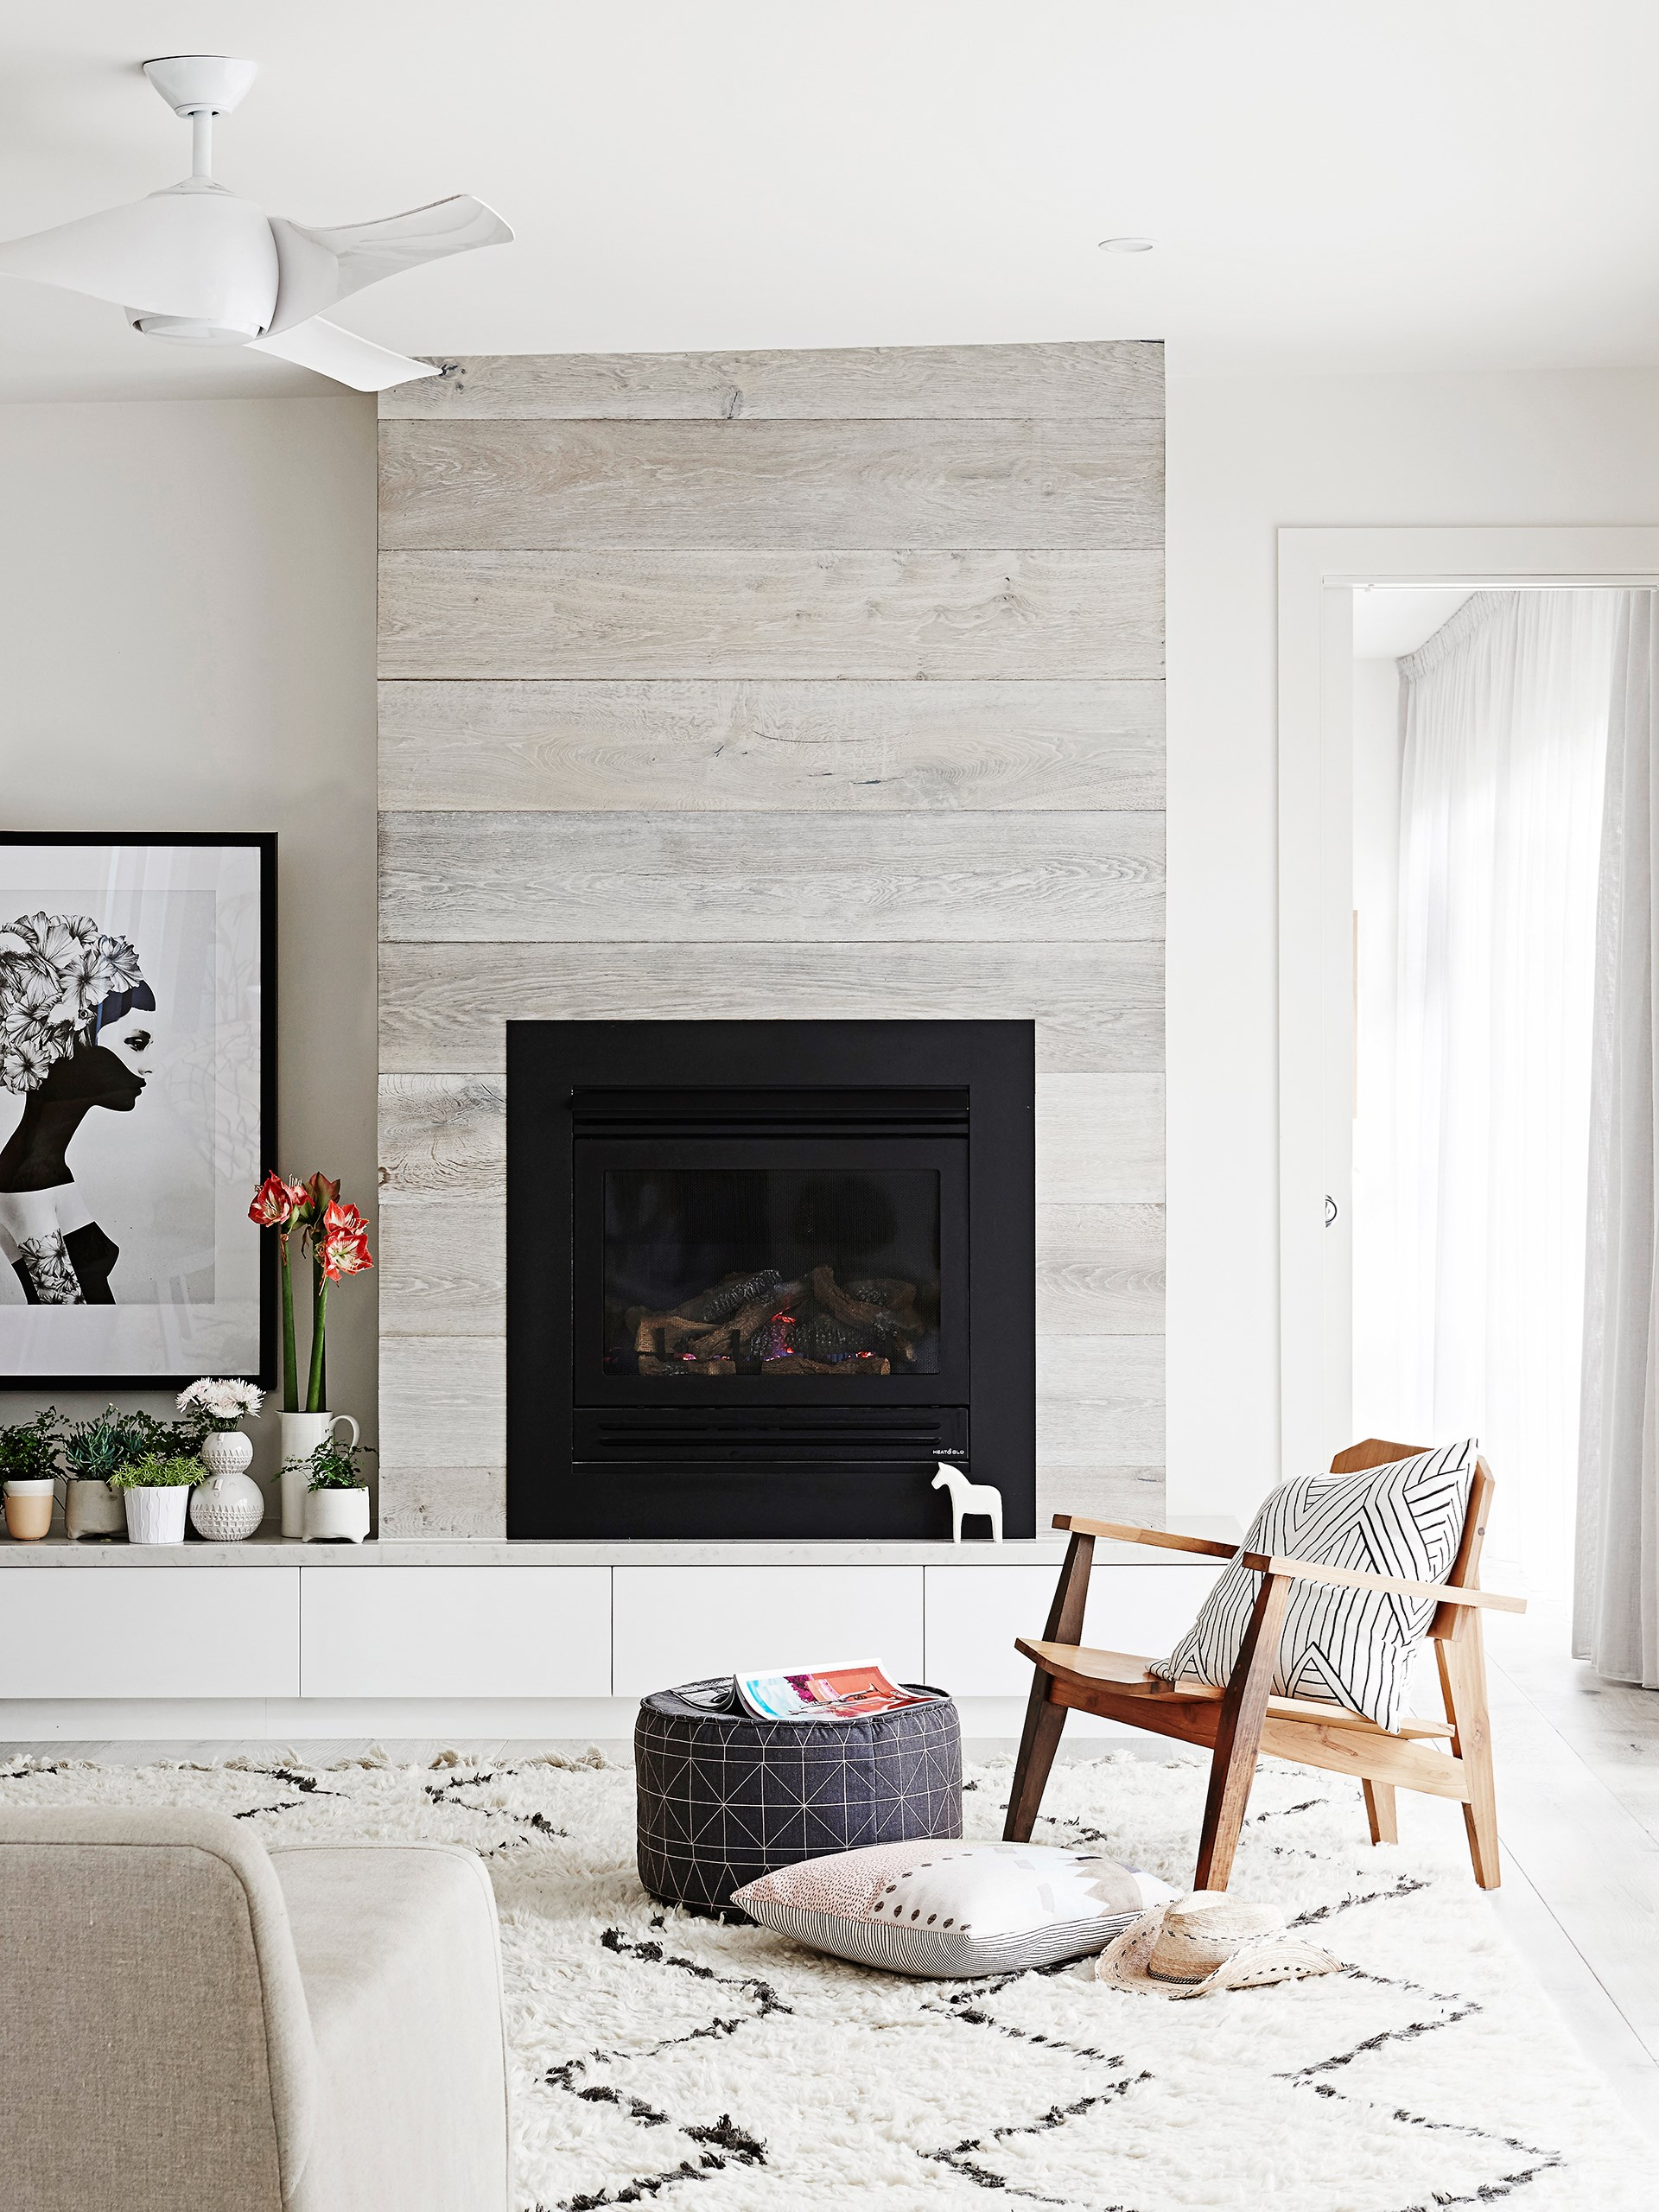 "[This renovated heritage bungalow](http://www.homestolove.com.au/karling-and-stevens-scandi-style-home-2055|target=""_blank"") was swept with a simple, sophisticated brush. The living room comes complete with a Heat & Glo fireplace. Marianna print by Ruben Ireland from [Norsu Interiors](http://www.norsu.com.au//?utm_campaign=supplier/